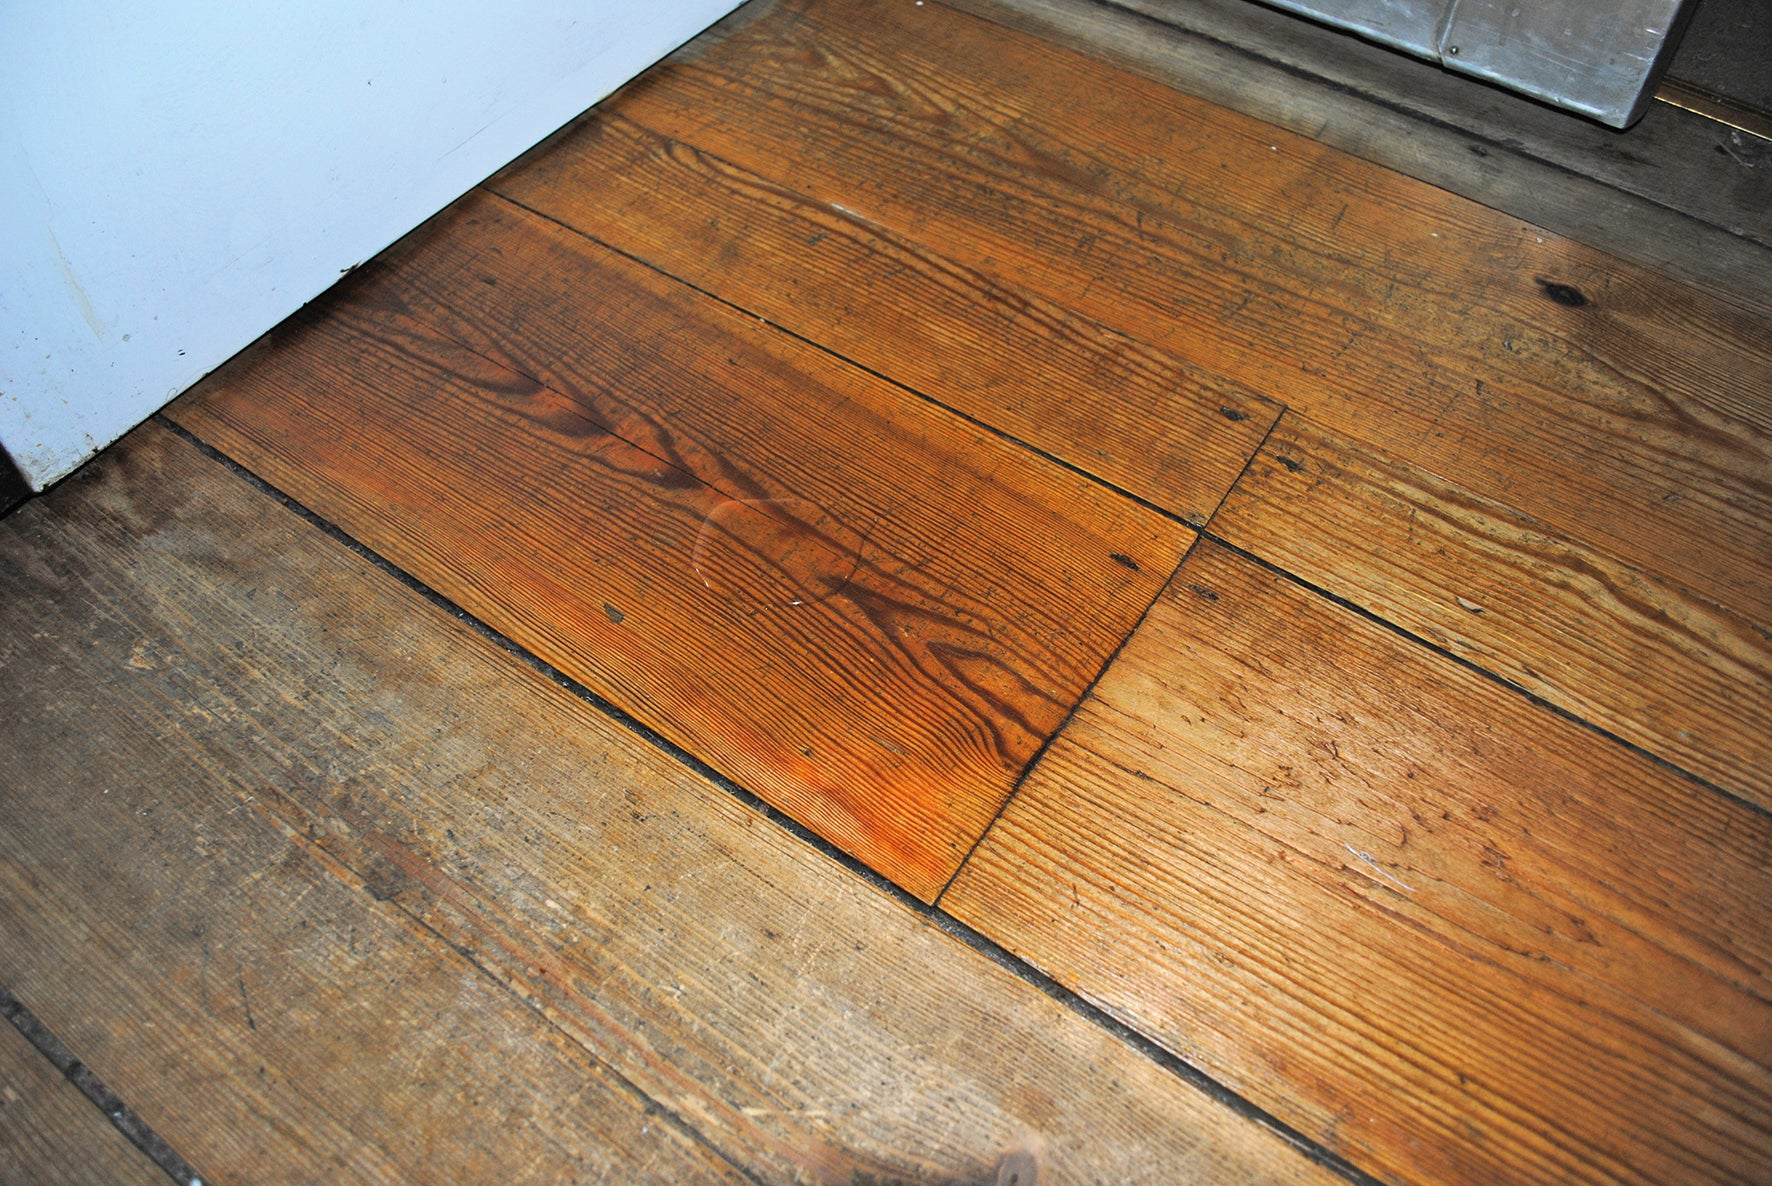 Allback Linseed Oil Wax to rejuvenate wooden floors.